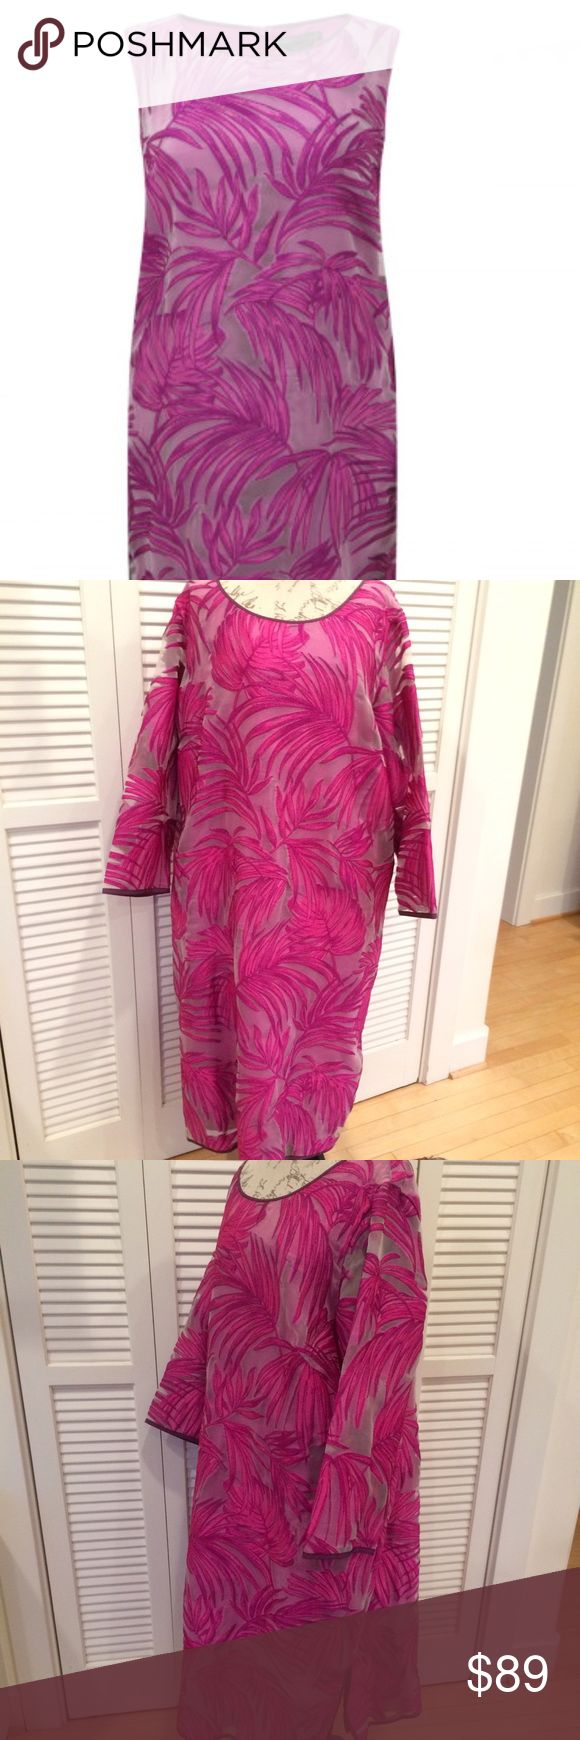 """Marina Rinaldi silk devore formal dress, NWOT Marina Rinaldi fuchsia silk devore formal dress, NWOT. I removed the labels, but you can find the same dress at """"Beige plus size clothing, UK"""" where it was purchased. Bought it for a wedding that I couldn't attend. Never worn. Fully lined, A line with slits on each sides. Shoulder to hem length 46"""", pit to pit bust width 27"""". width at the hem 30"""". Marina Rinaldi Dresses"""